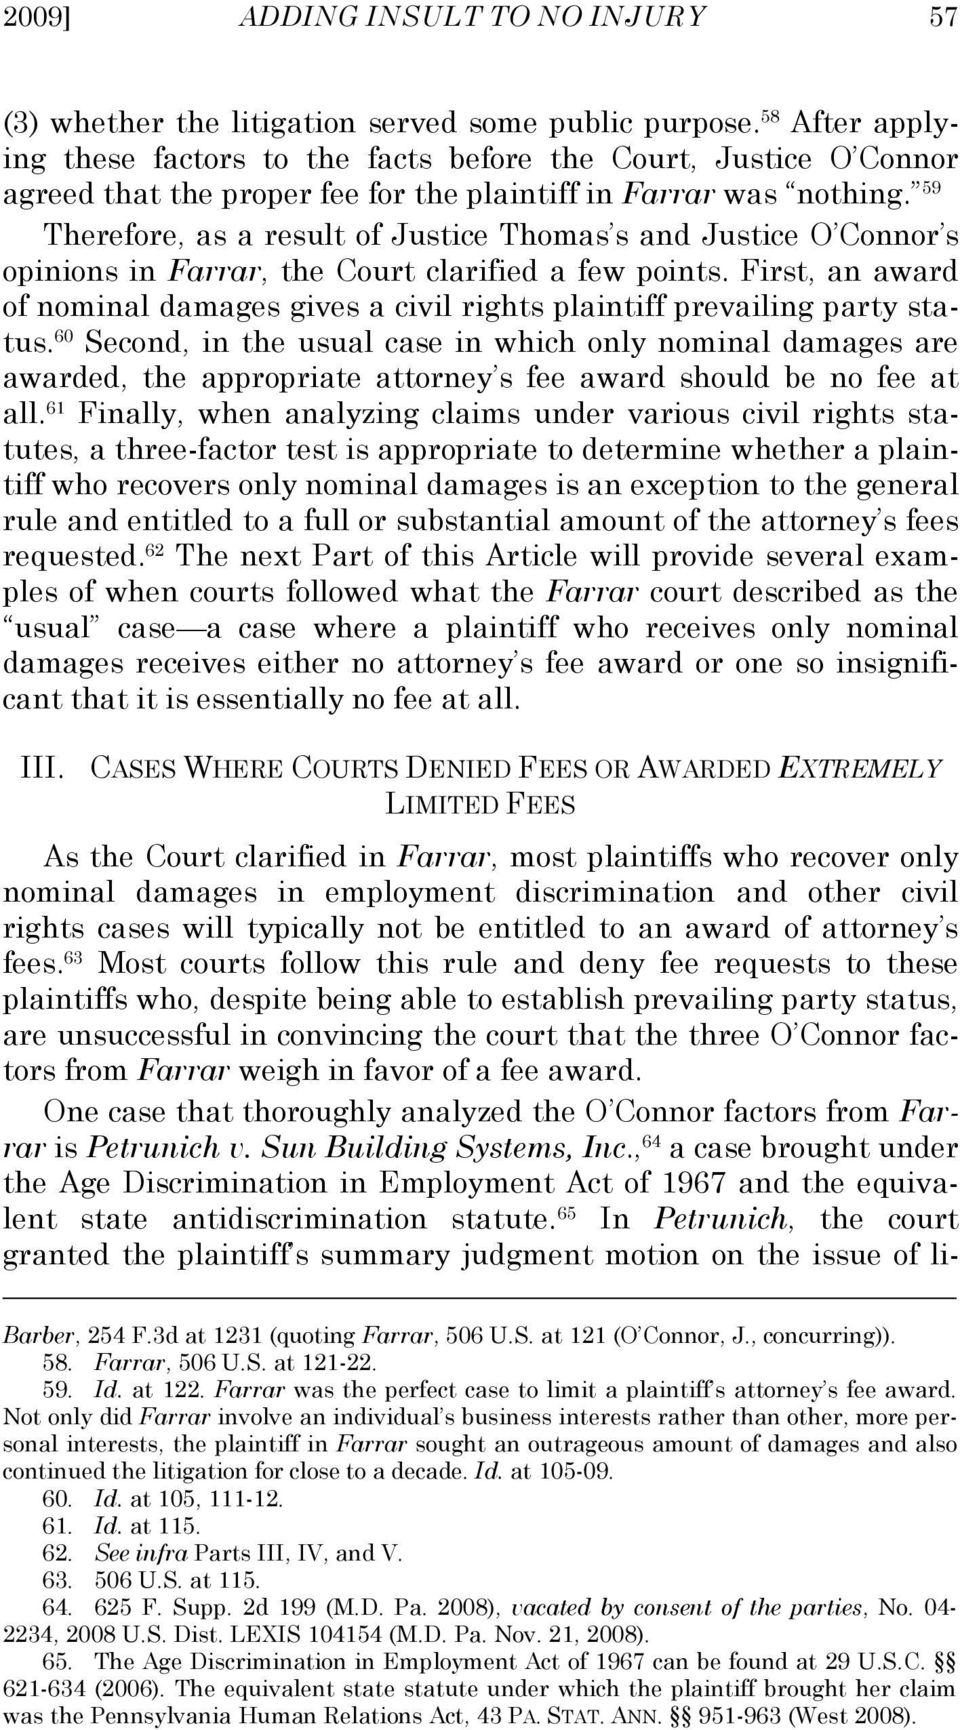 59 Therefore, as a result of Justice Thomas s and Justice O Connor s opinions in Farrar, the Court clarified a few points.